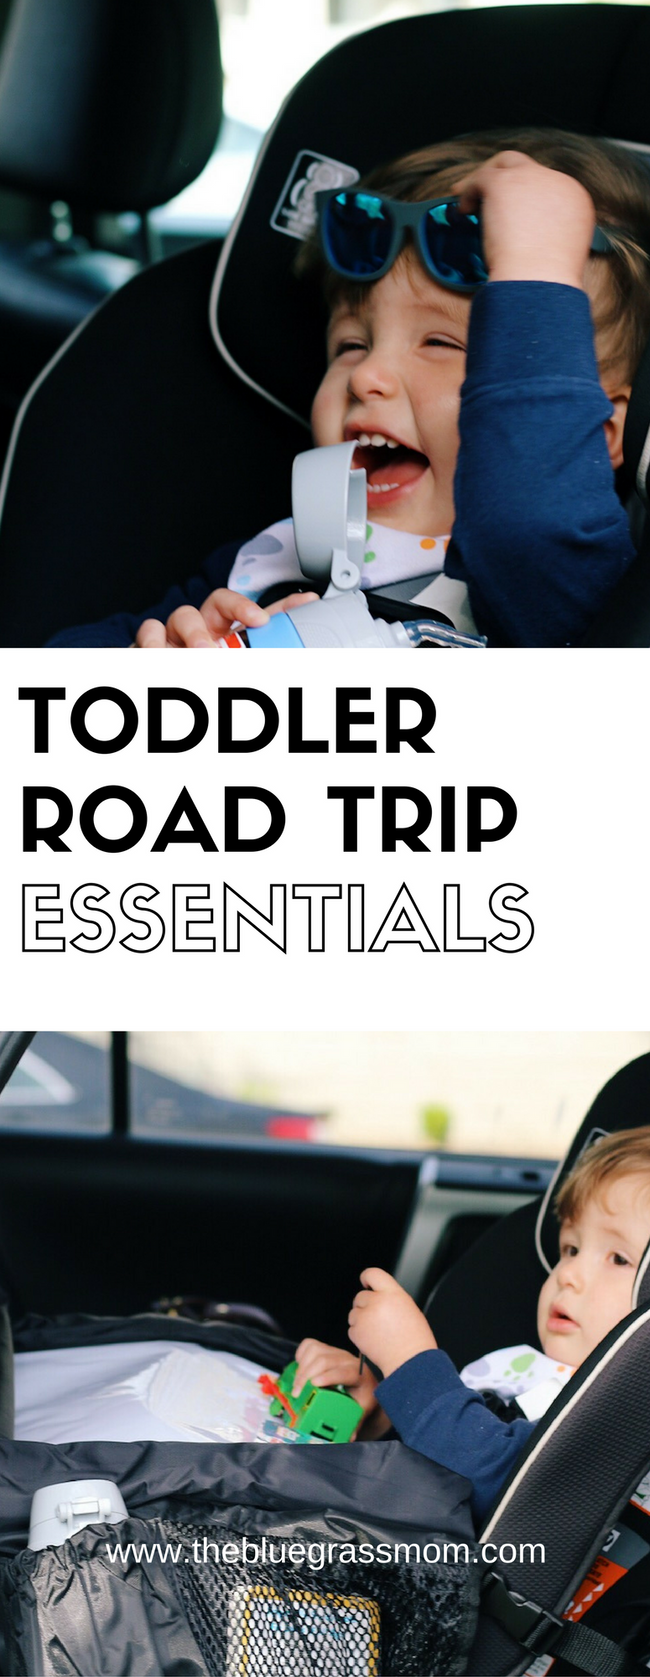 Toddler Road Trip Essentials